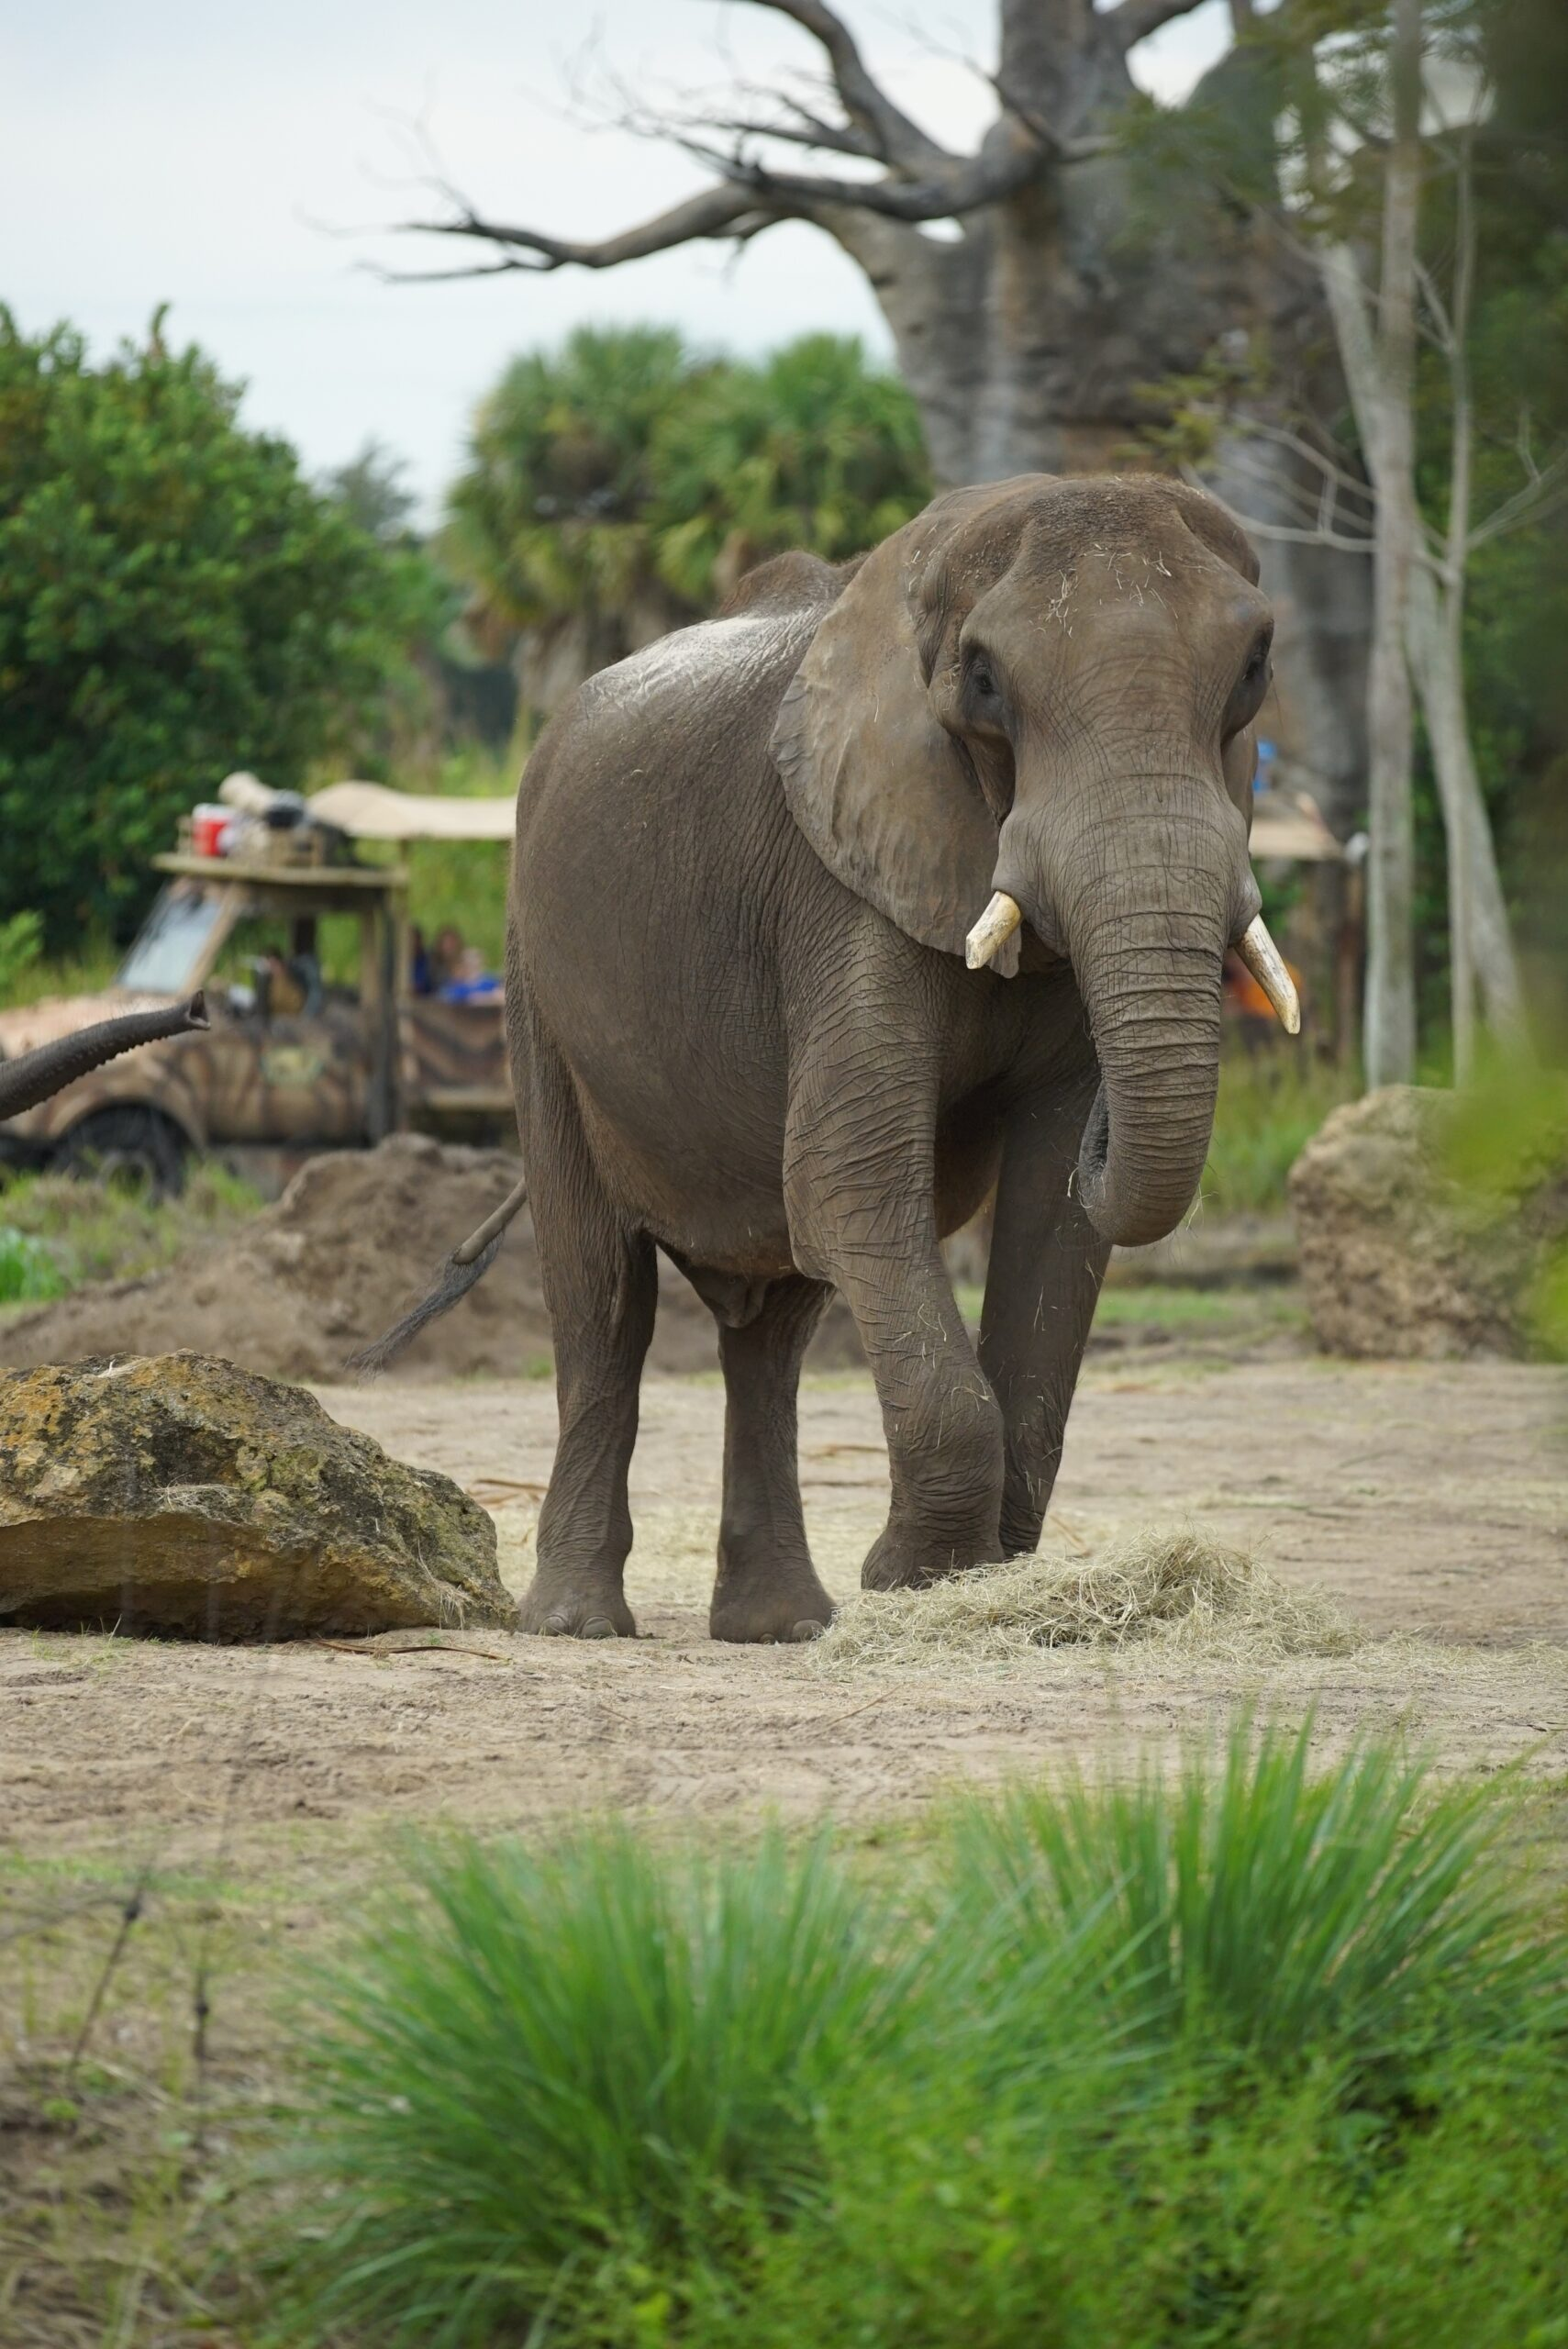 Have you been watching the trailers for the latest Disney Plus docuseries? This review will tell you if the new Magic of Disney's Animal Kingdom is a must watch for kids!